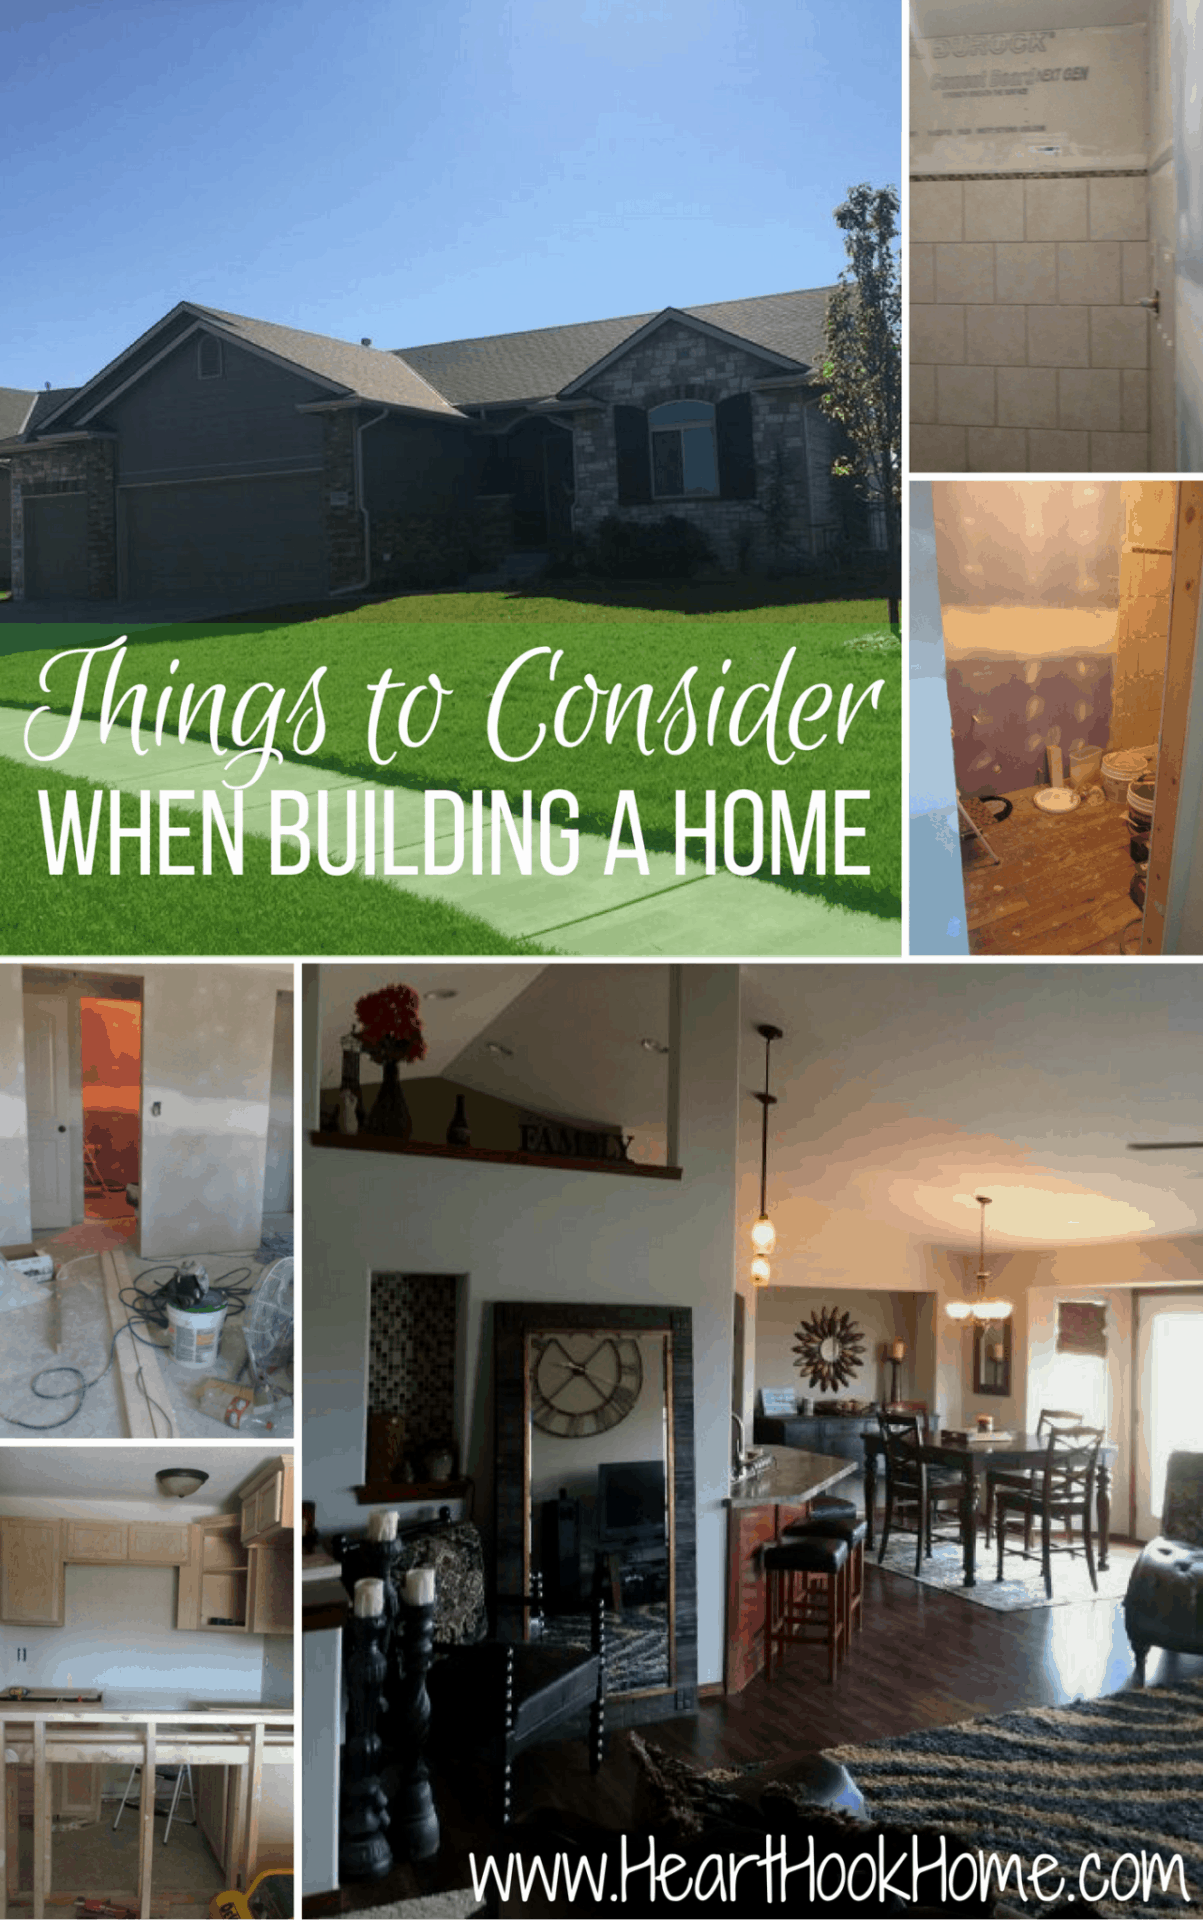 Things to Consider When Building a Home